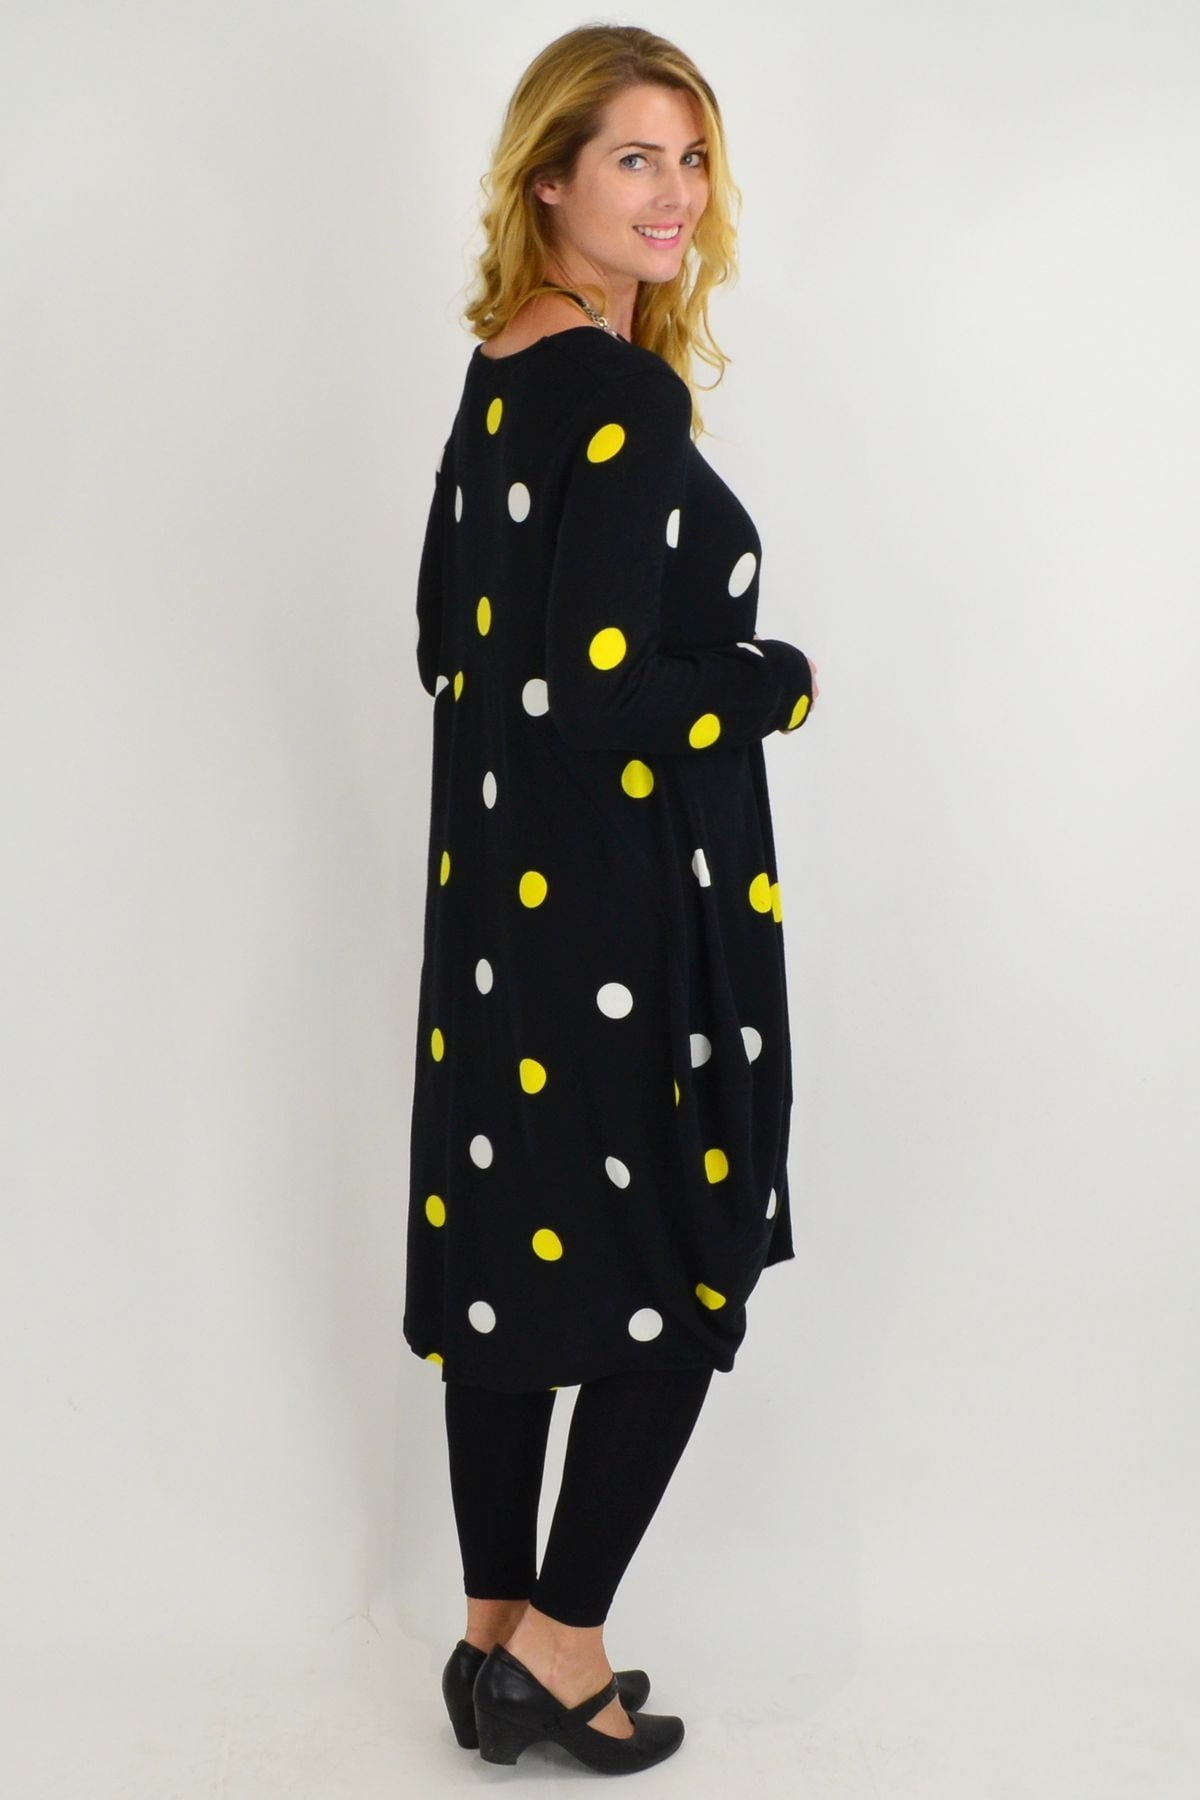 Yellow Spot Cocoon winter Tunic Dress - I Love Tunics